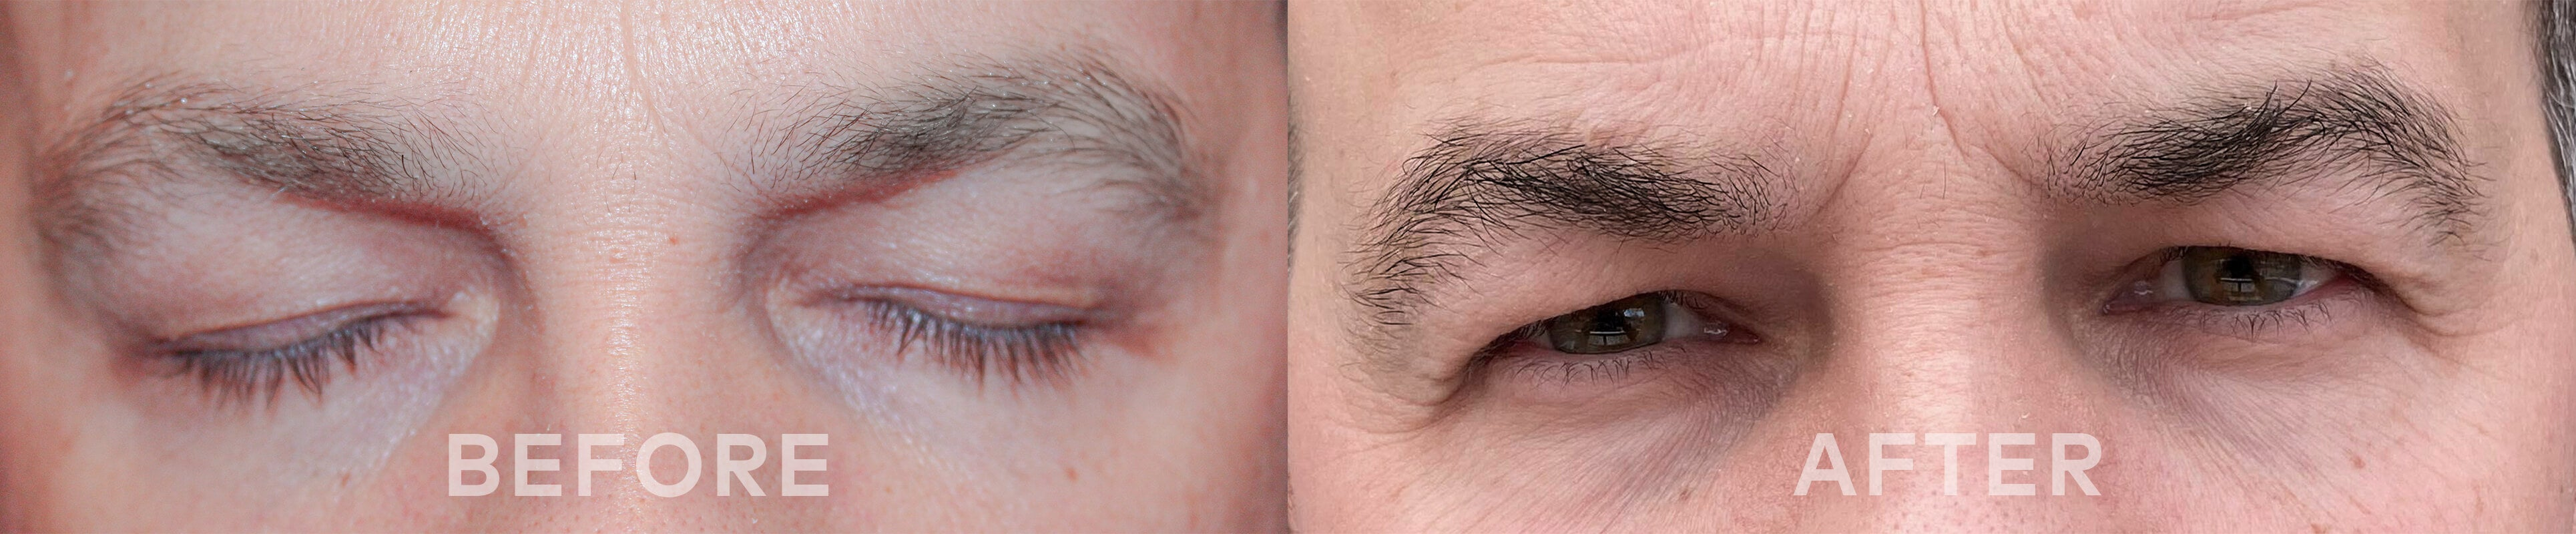 before and after using ADOREYES eyebrows growth serum